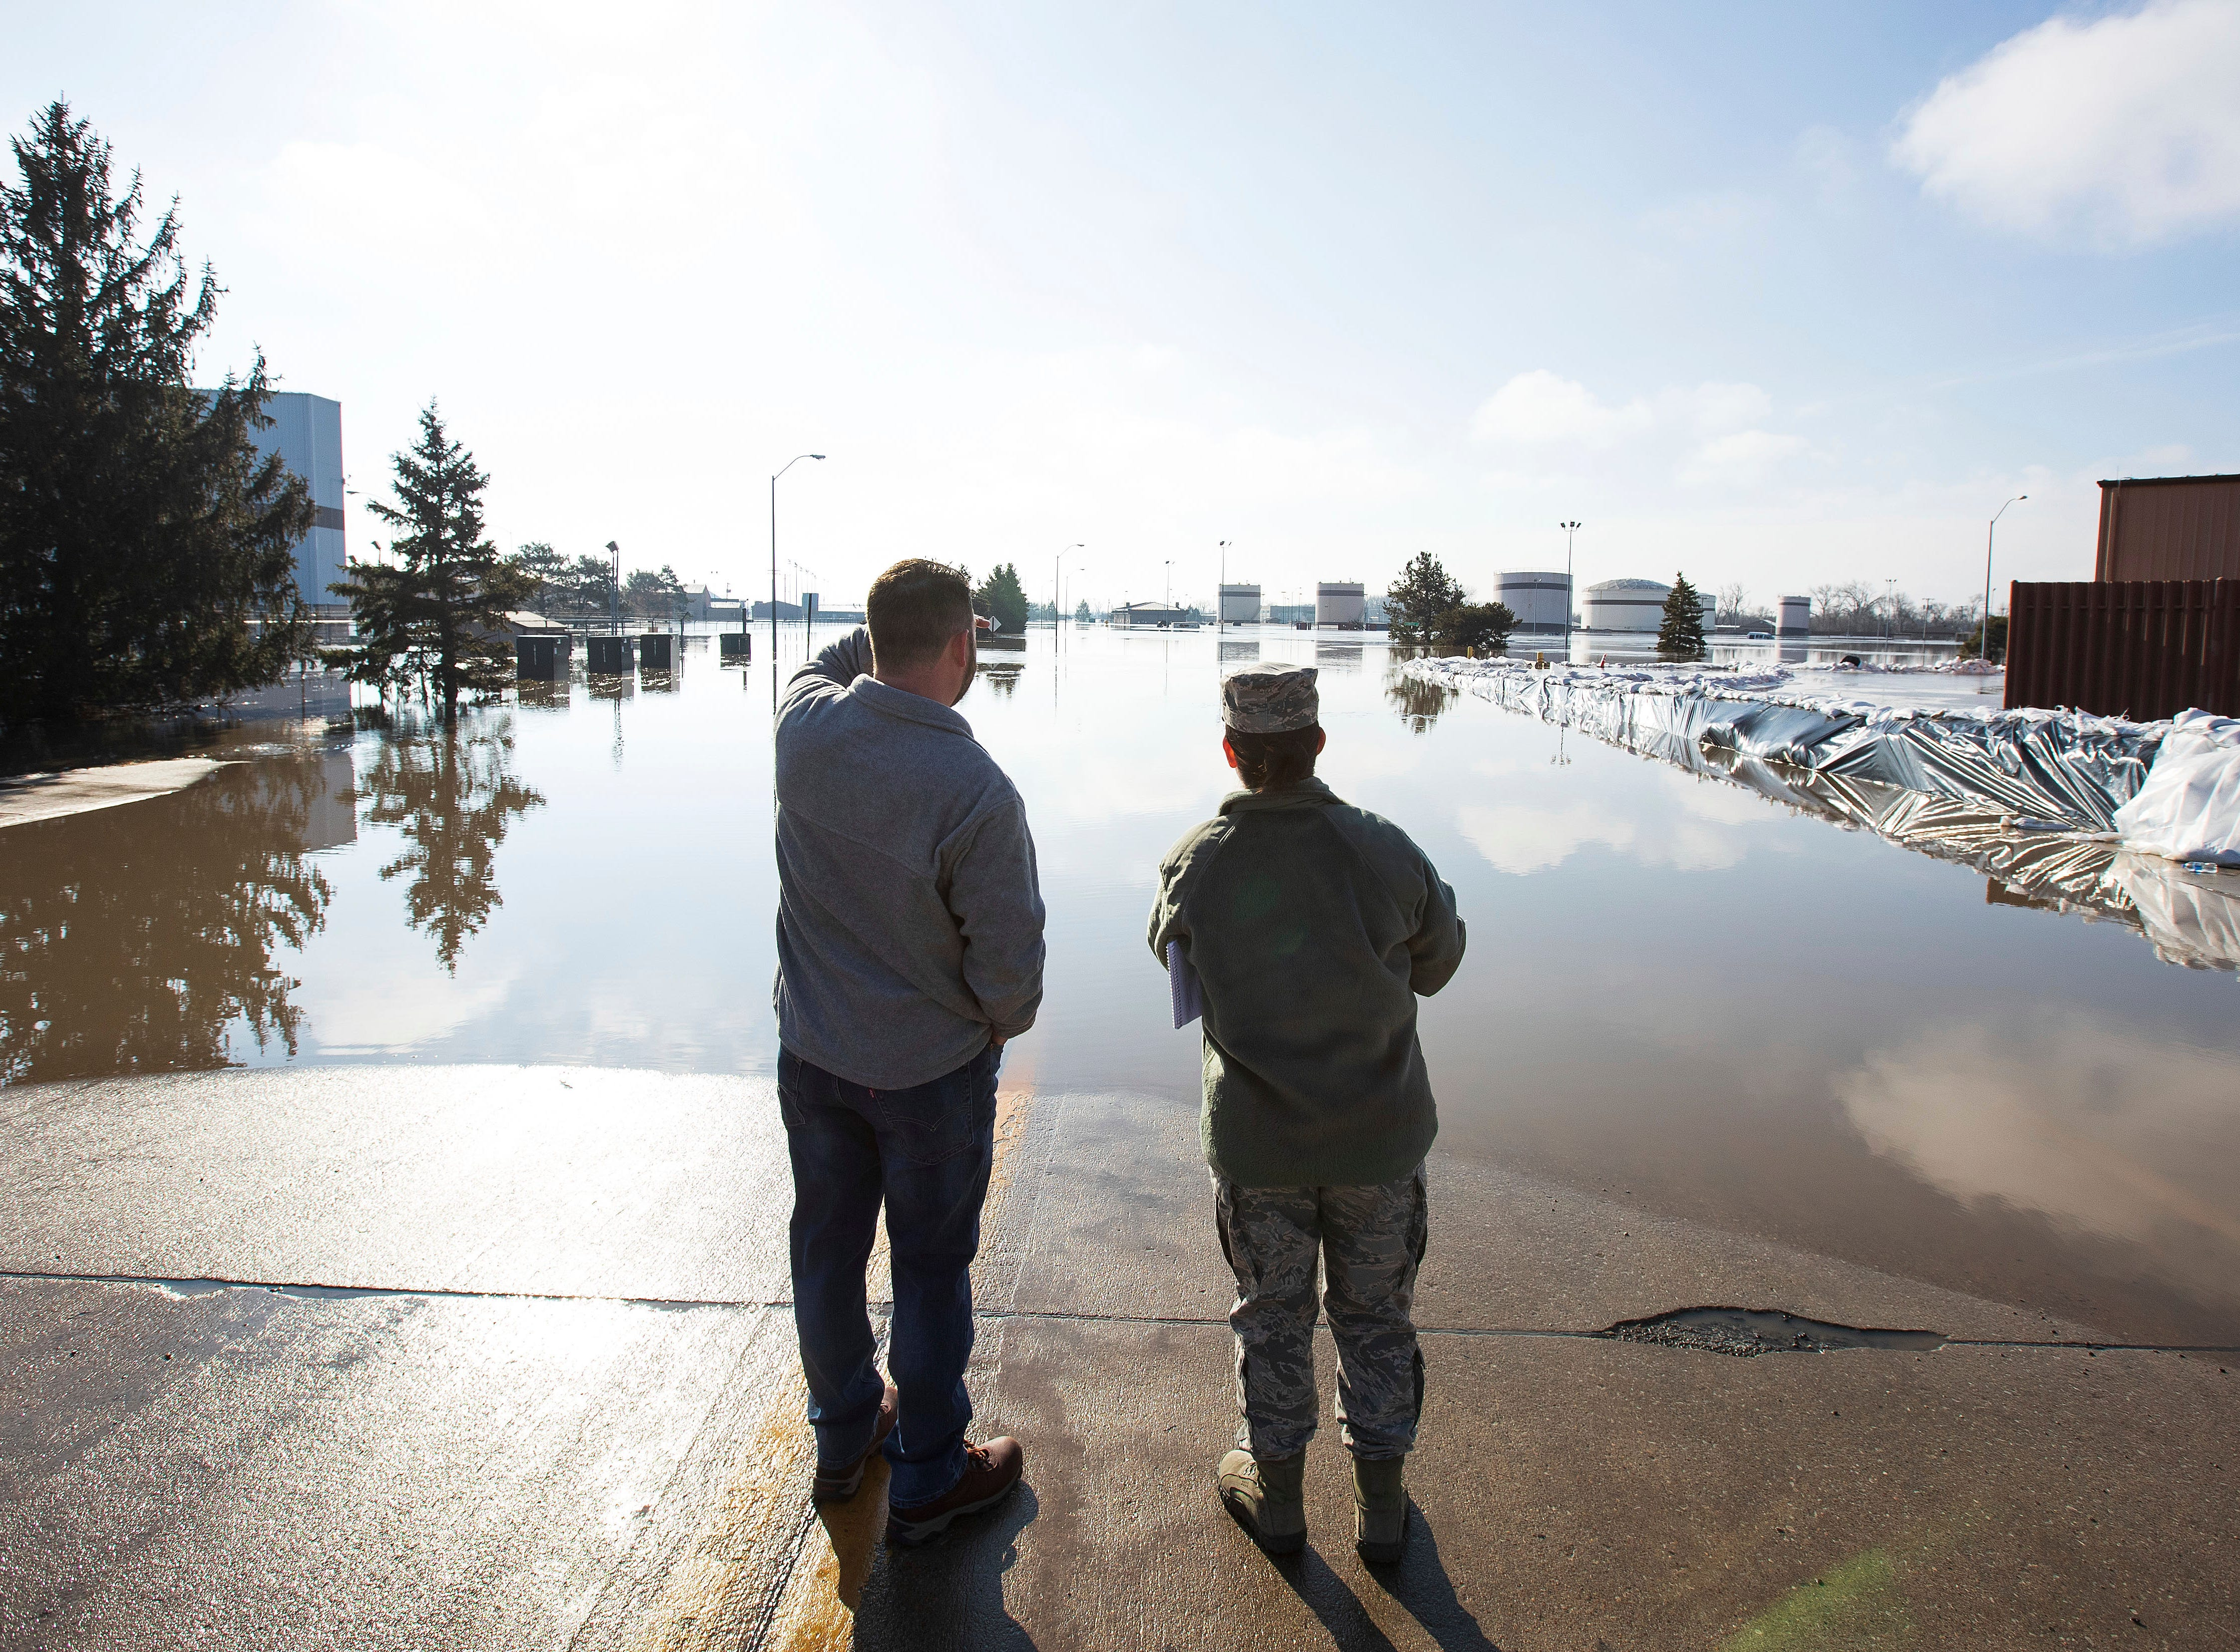 Luke Thomas and Air Force Tech Sgt. Vanessa Vidaurre look at a flooded portion of Offutt Air Force Base Sunday, March 17, 2019, in Bellevue, Neb.